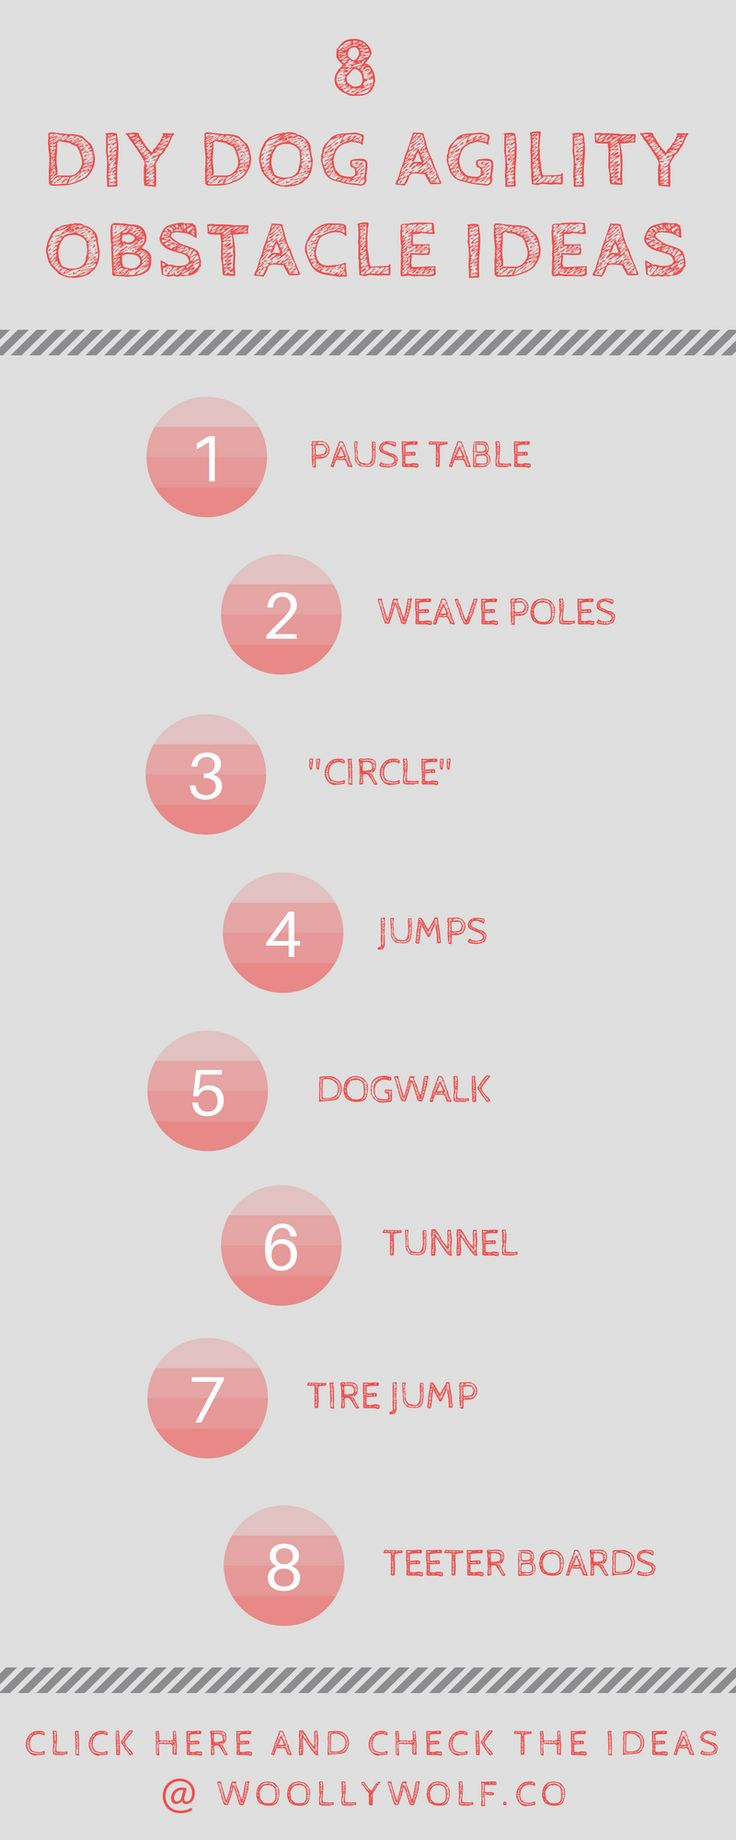 8 DIY Dog Agility Obstacle Ideas. Do it yourself agility training, hobby with doggo. Dog training ideas, have fun with your puppy.